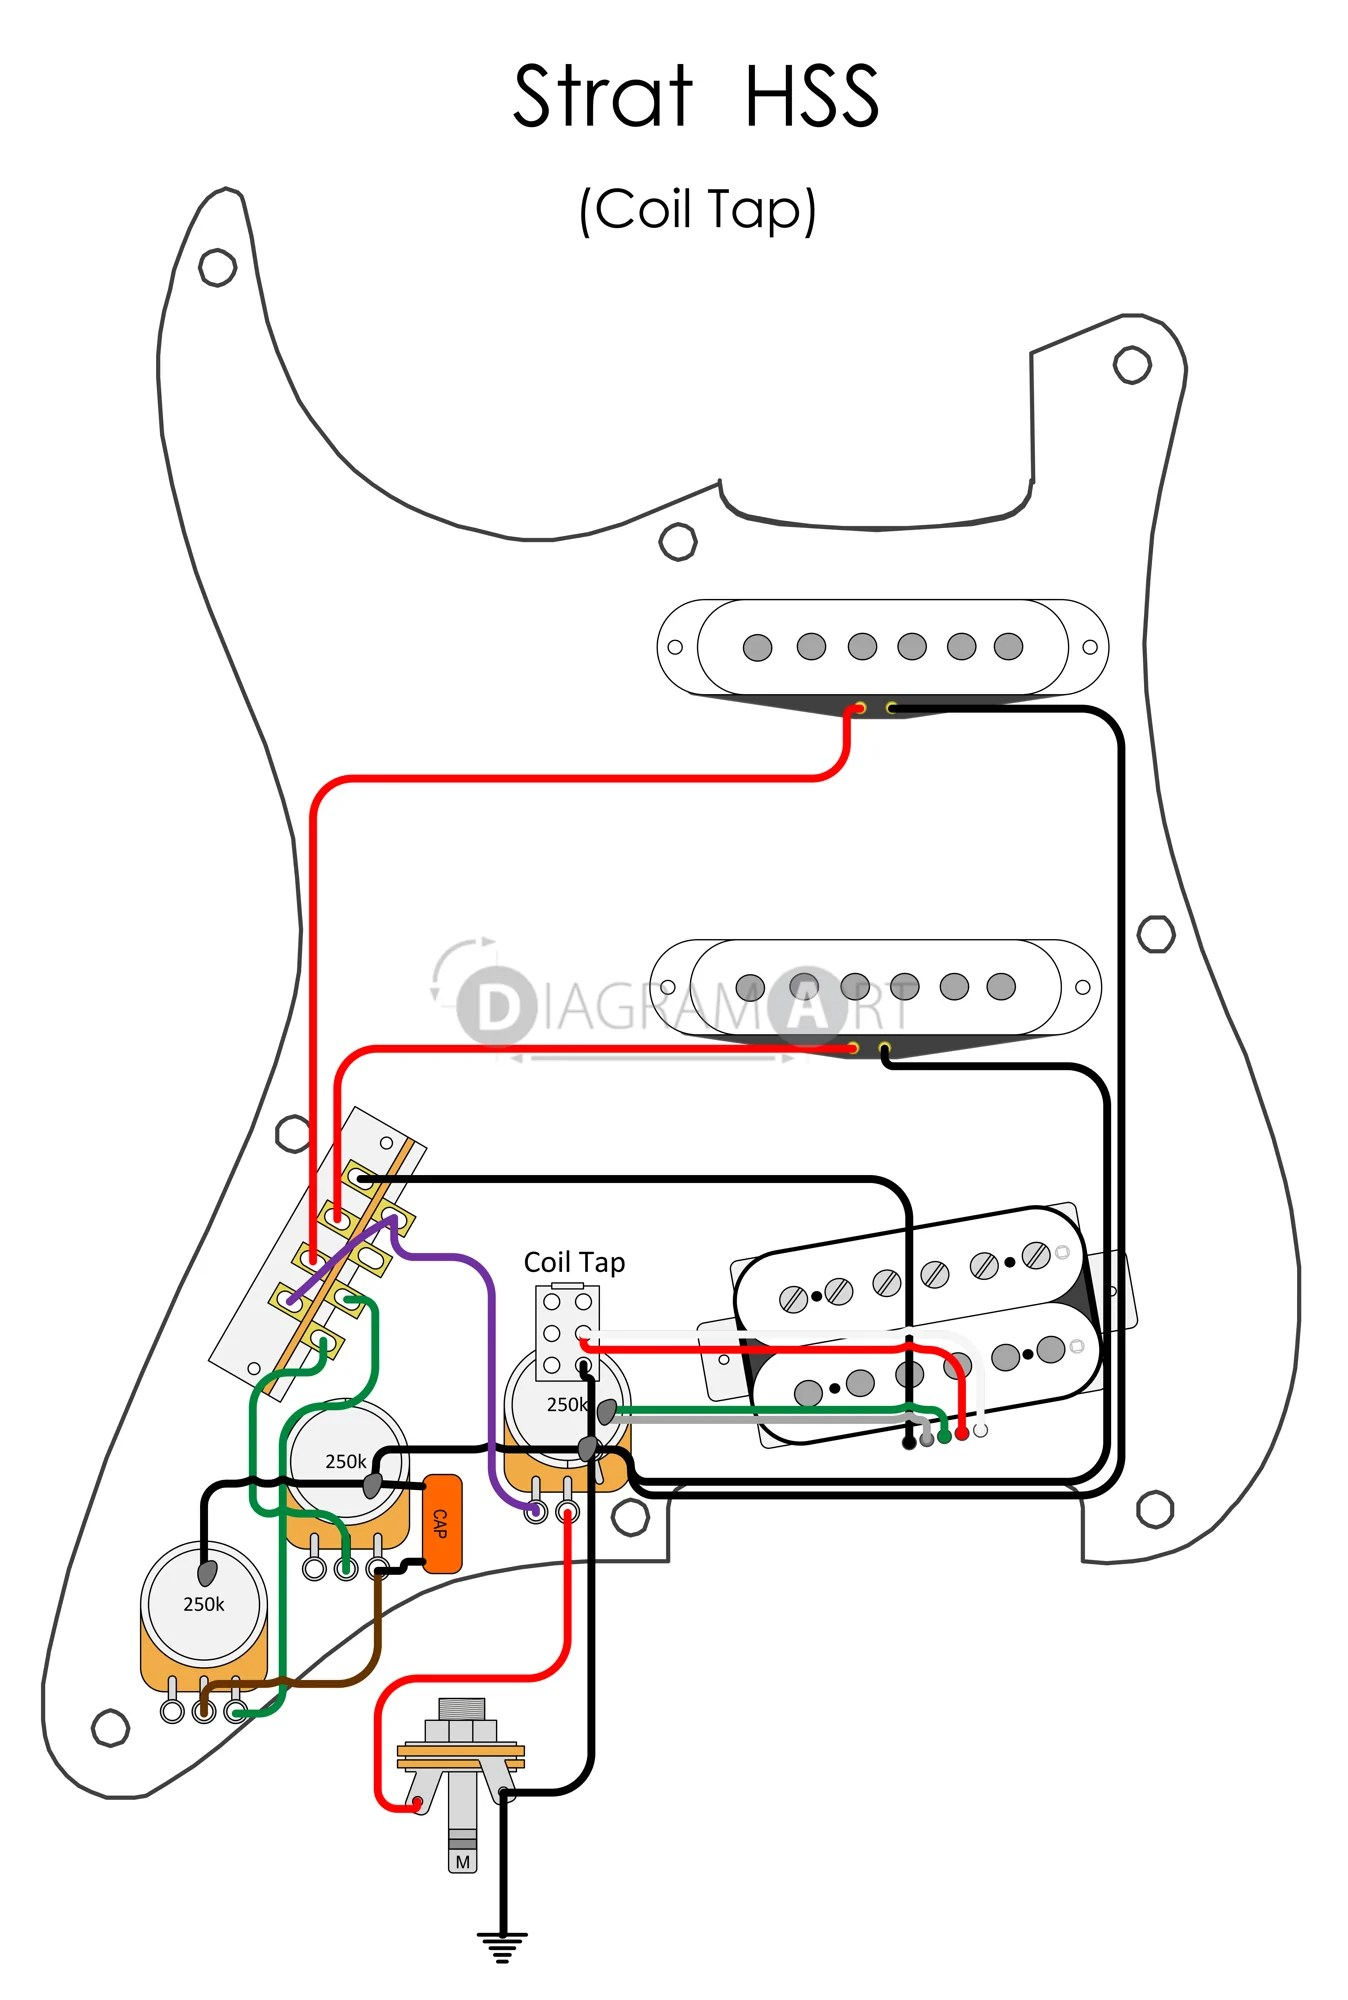 Electric Guitar Wiring: Strat HSS (Coil Tap) [Electric Circuit]